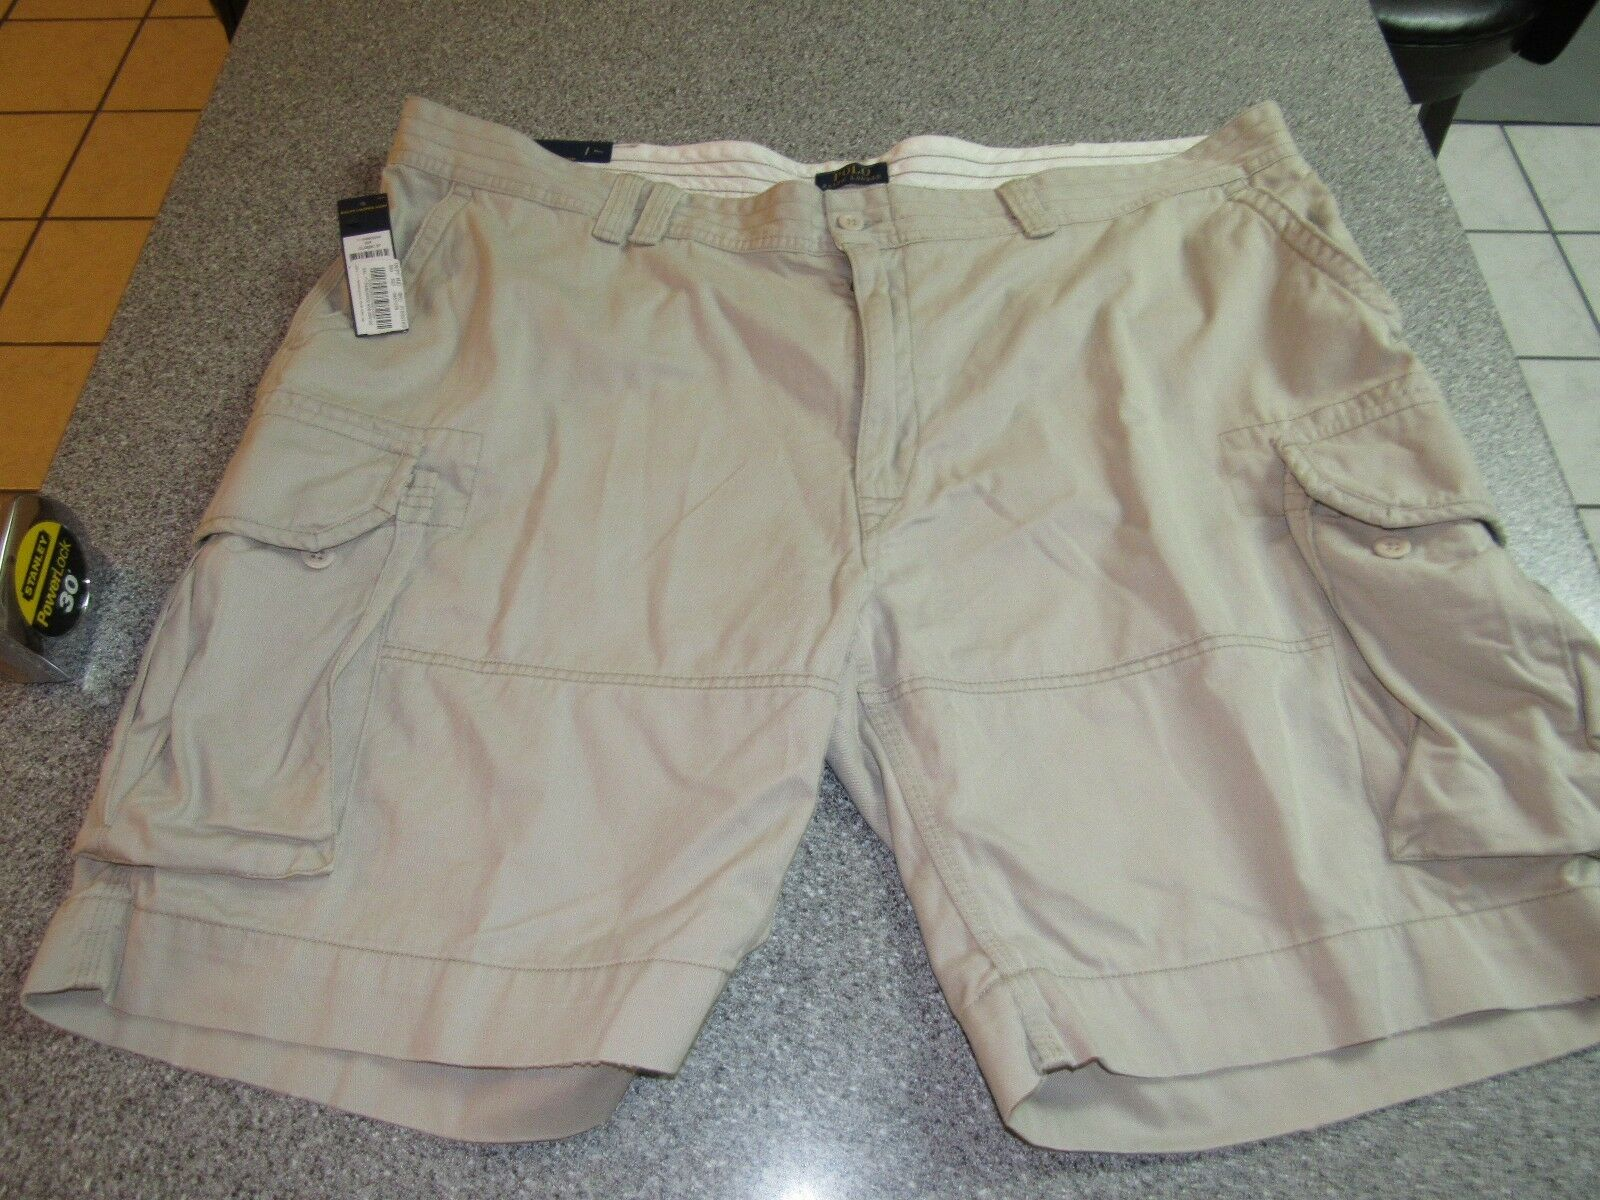 NWT MENS POLO RALPH LAUREN CLASSIC FIT CARGO KHAKI SHORTS 50B  RETAIL